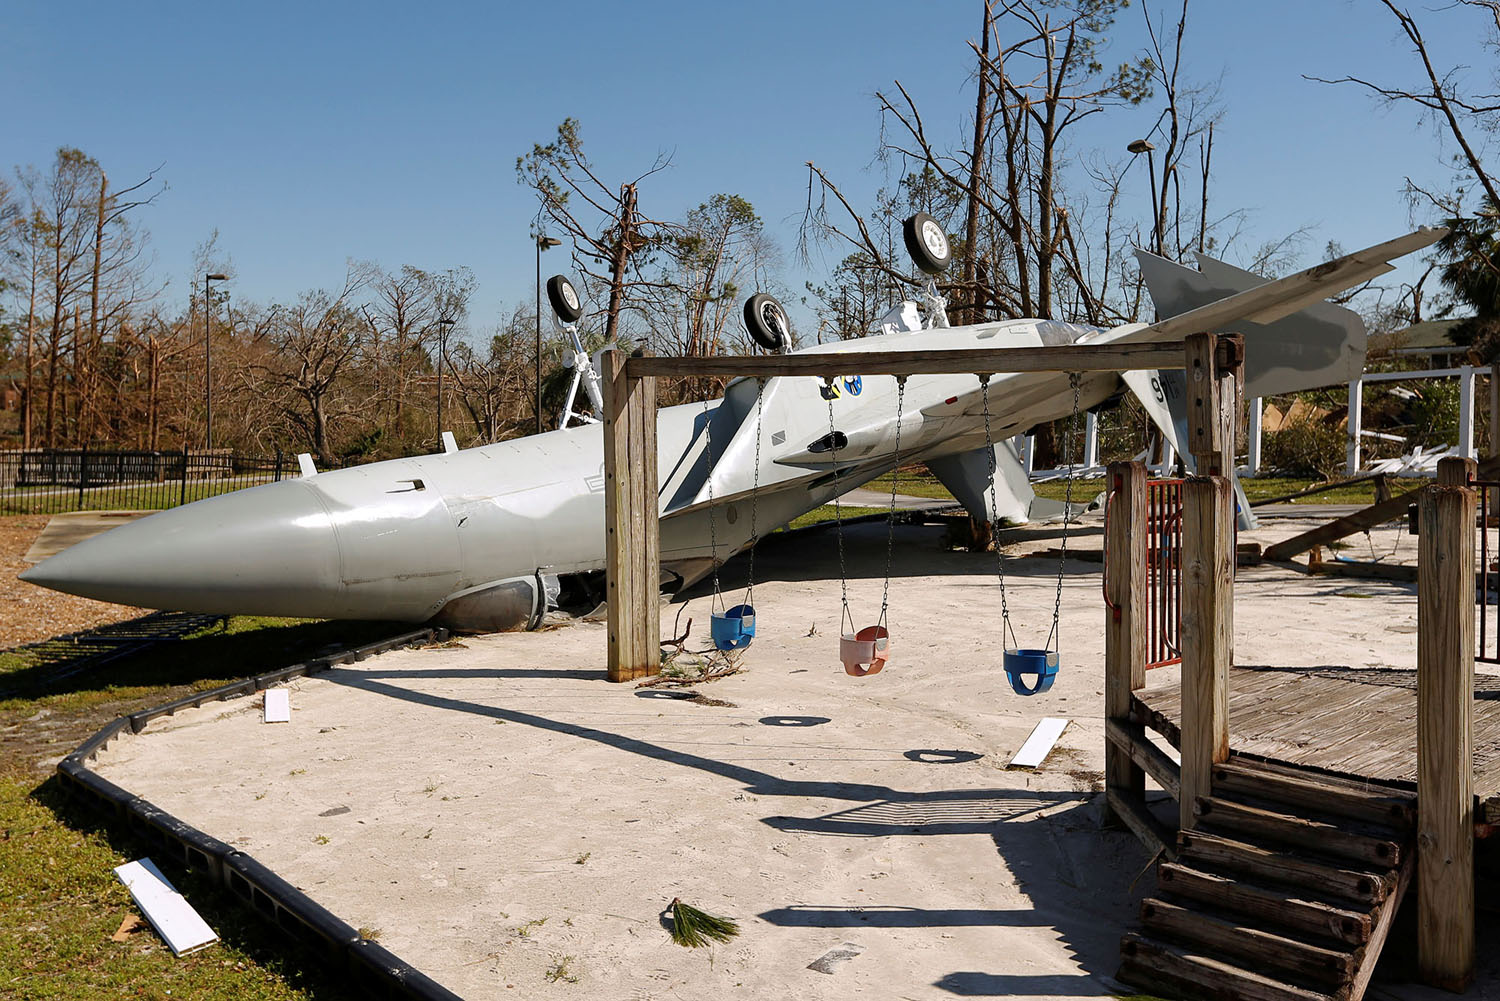 IRS Extends Deadlines for Victims of Hurricane Michael, destruction, playground, swings, airplane crashed